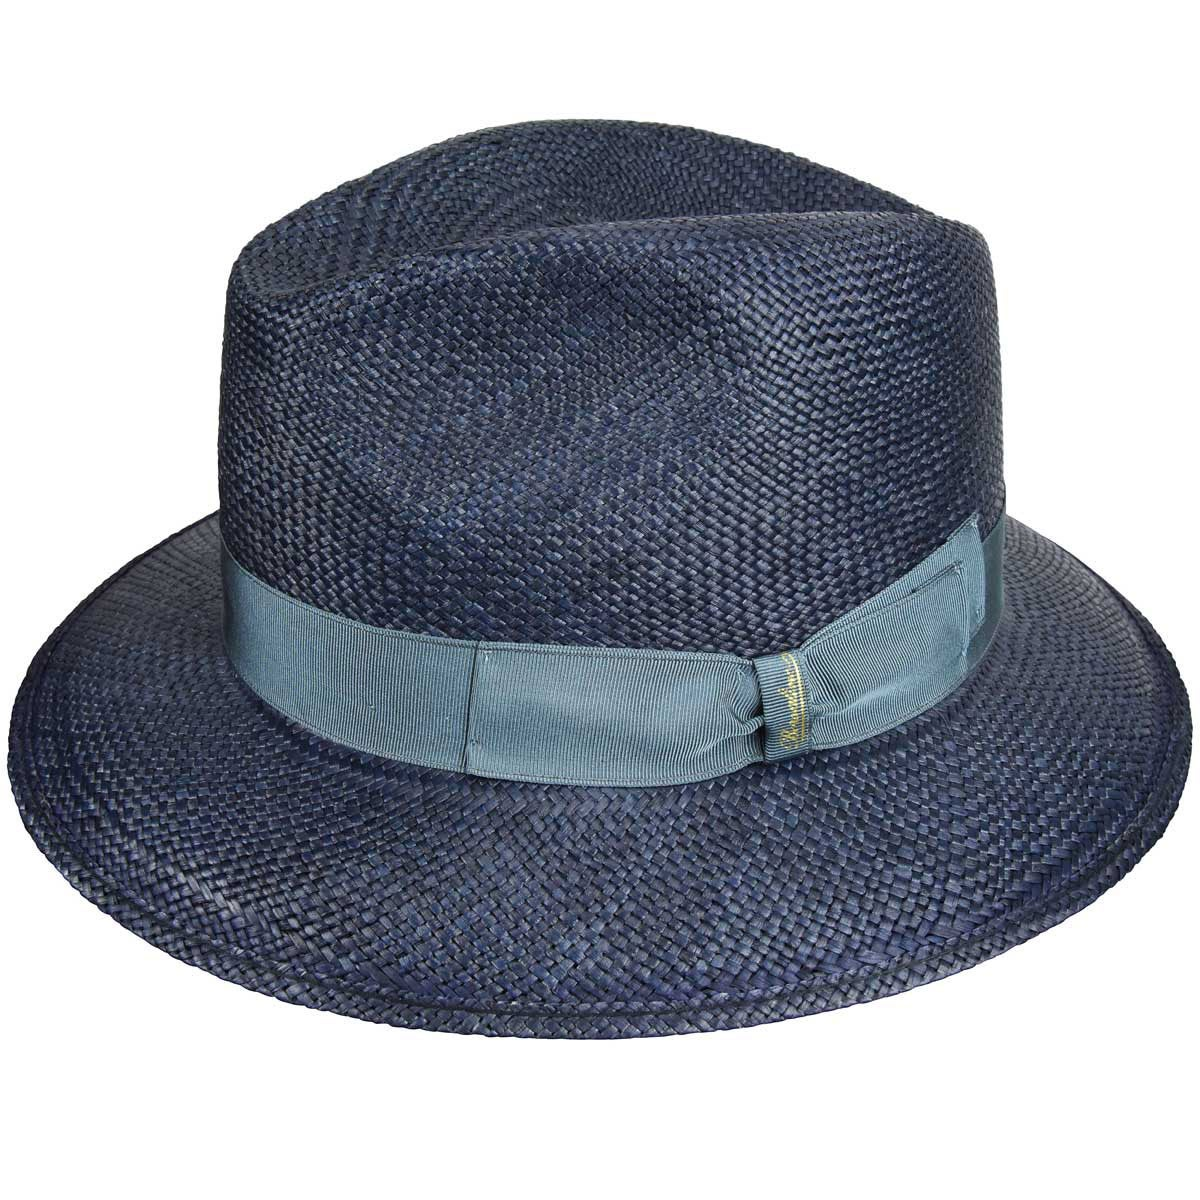 1930s Style Mens Hats 141086 Quito Panama Tesa Safari Fedora $268.00 AT vintagedancer.com